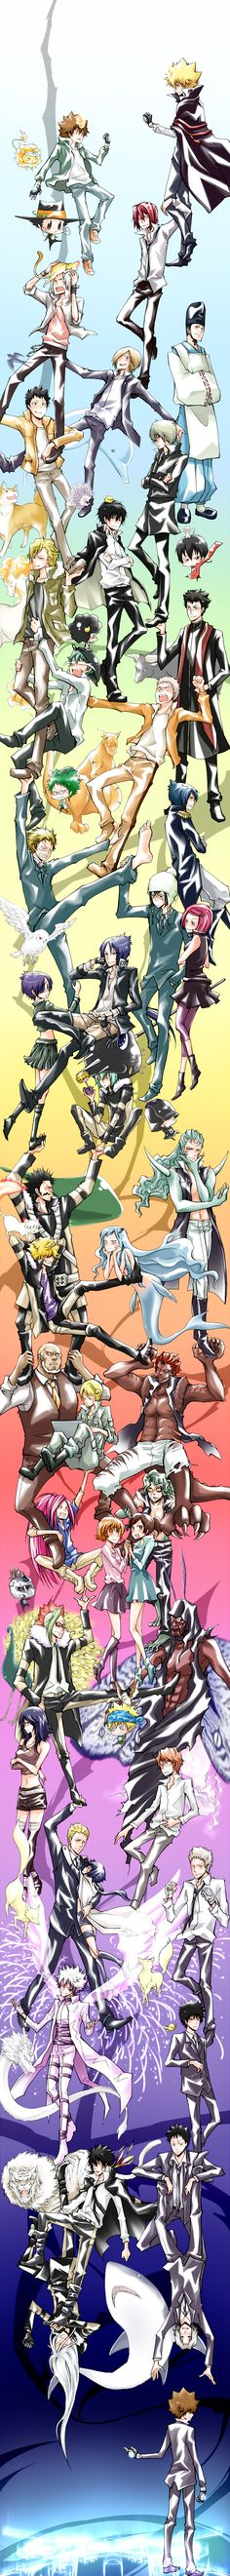 Katekyo Hitman Reborn (KHR) ~ Vongola: Primo vs. Decimo Bosses with their Guardians